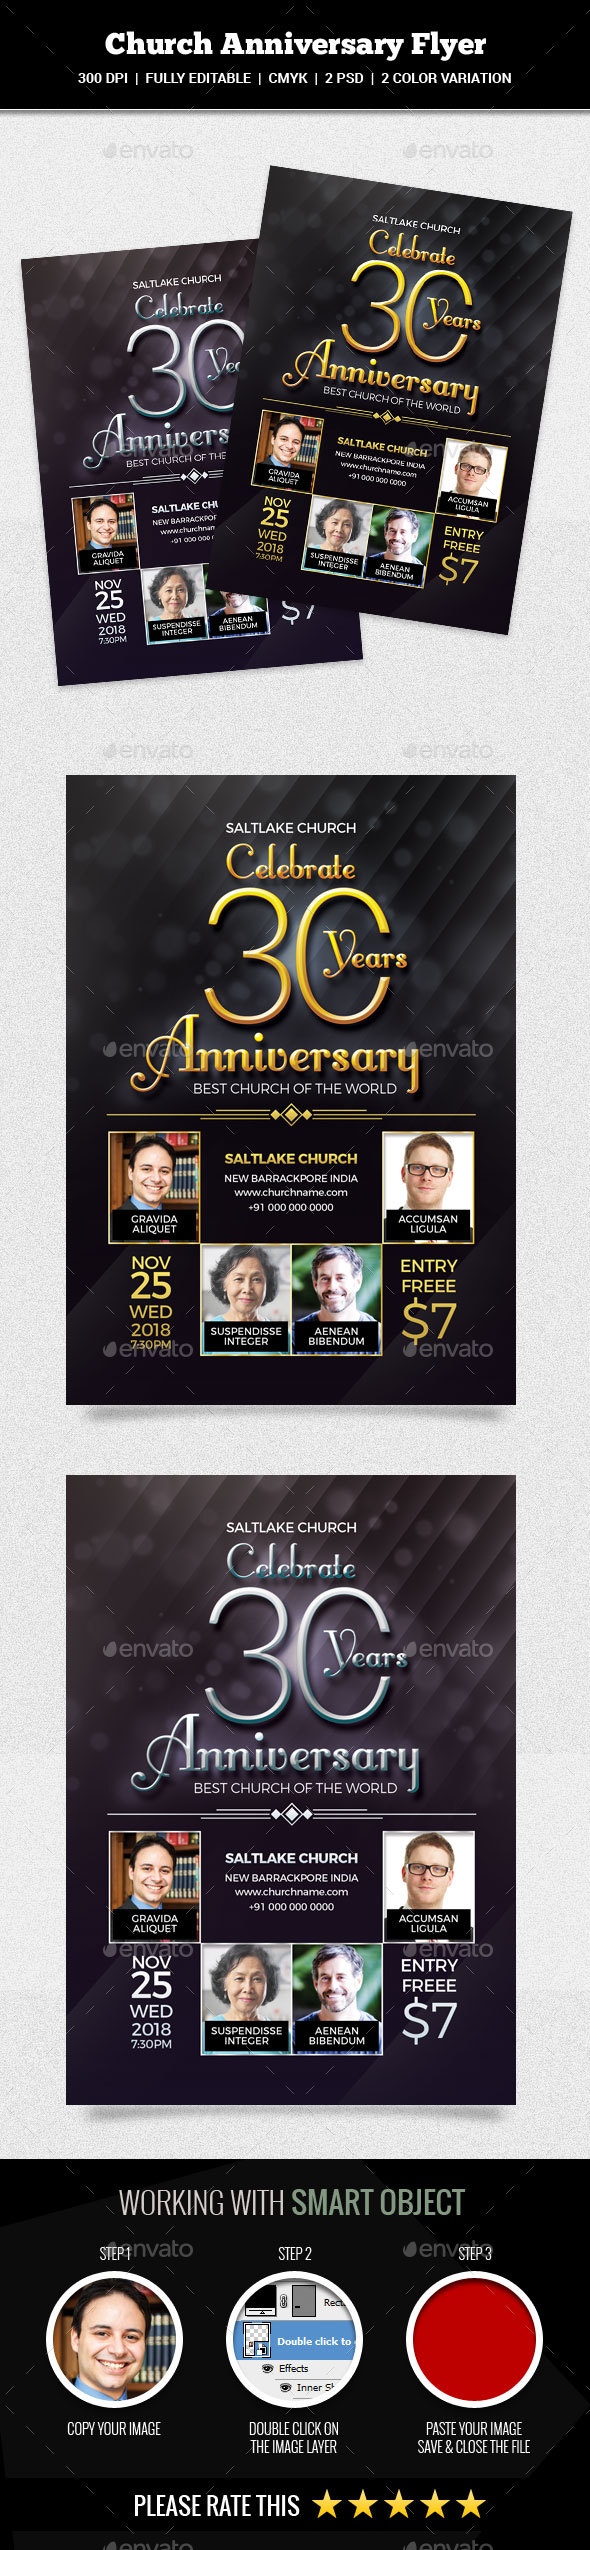 Church Anniversary Flyer - Church Flyers